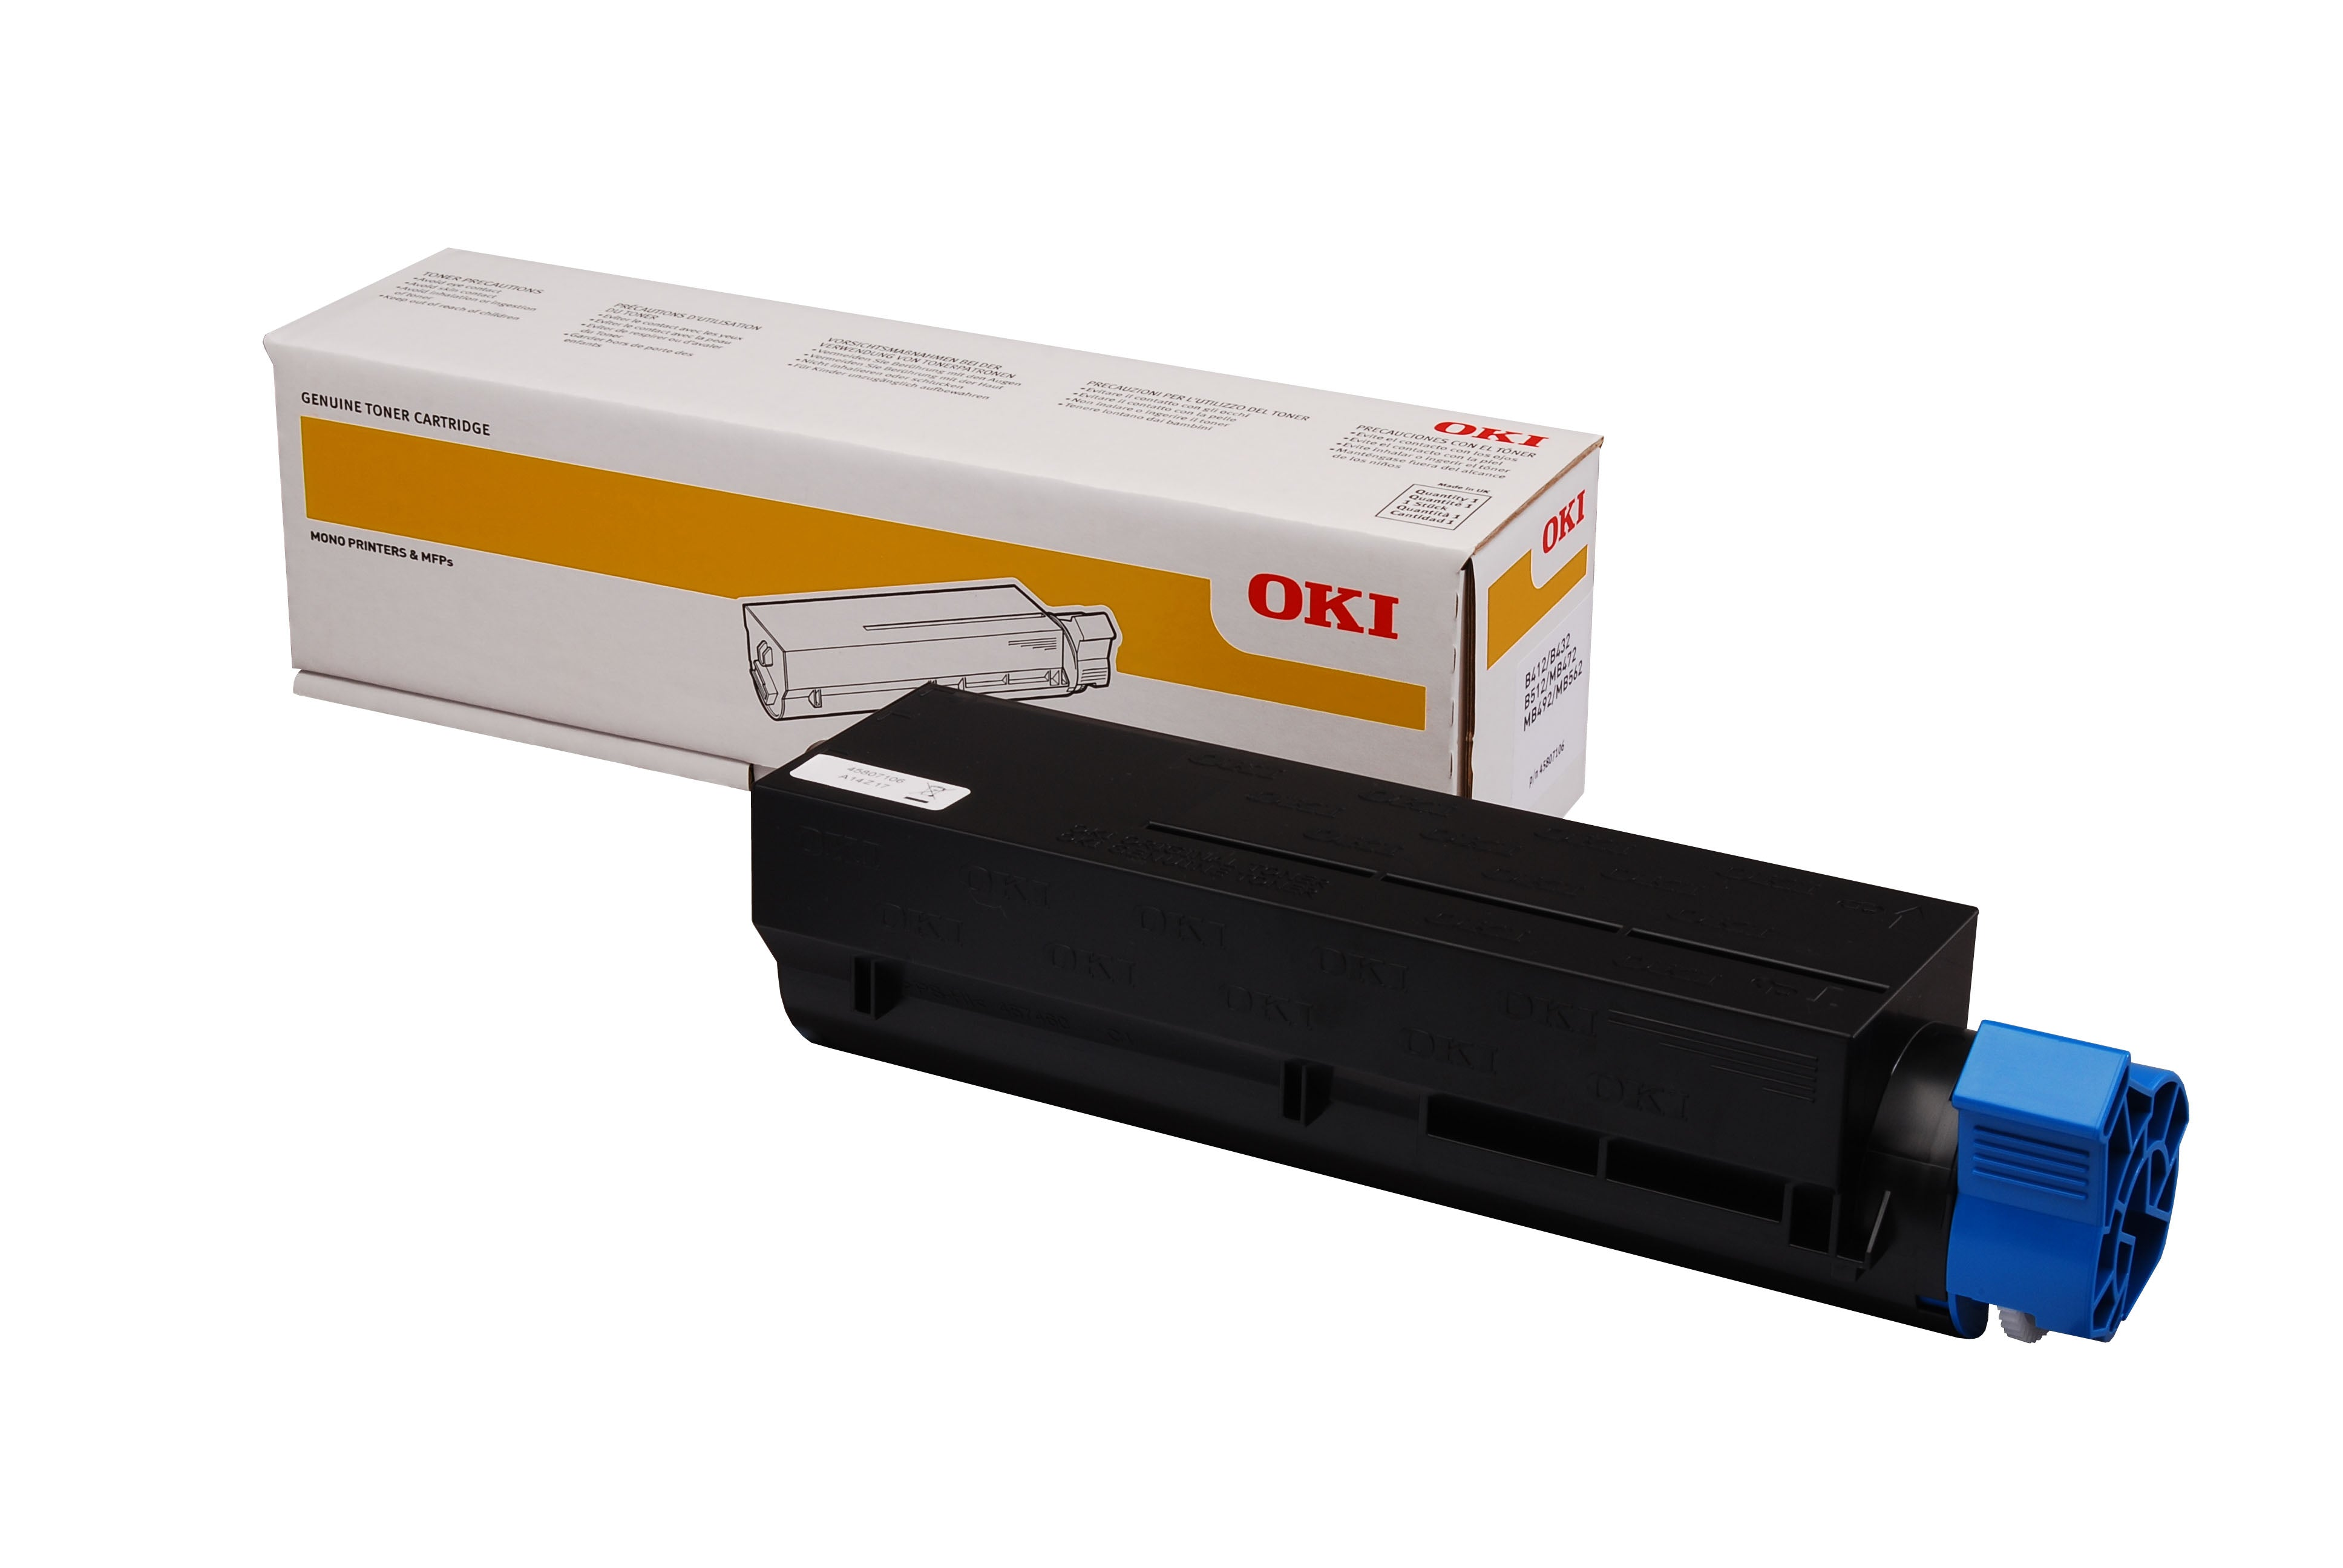 OKI MB492dn Black Toner (12,000 Pages) 45807112